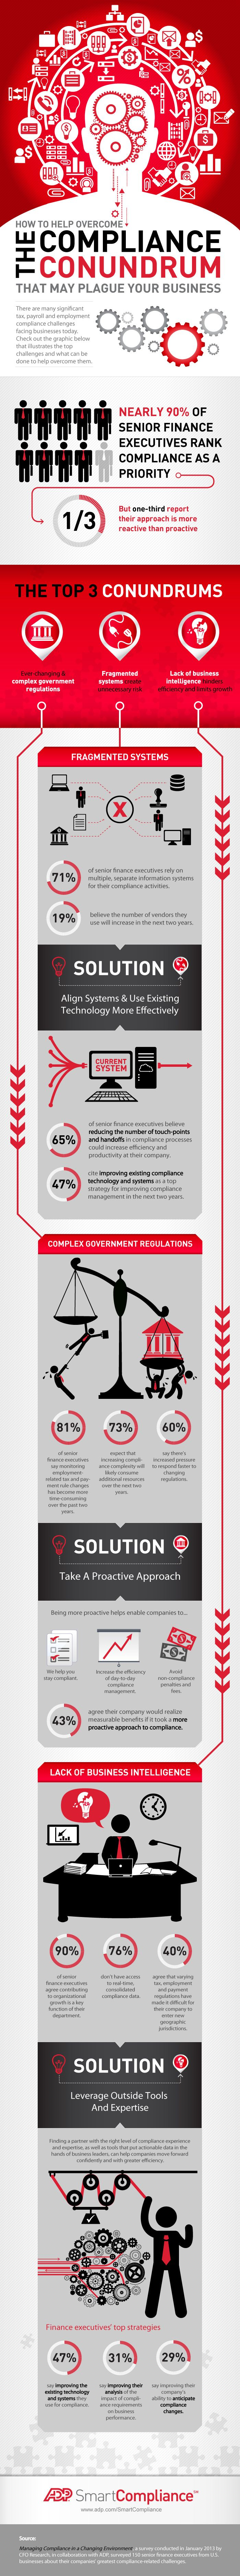 How to Help Overcome the Compliance Conundrum that May Plague your Business [Infographic]